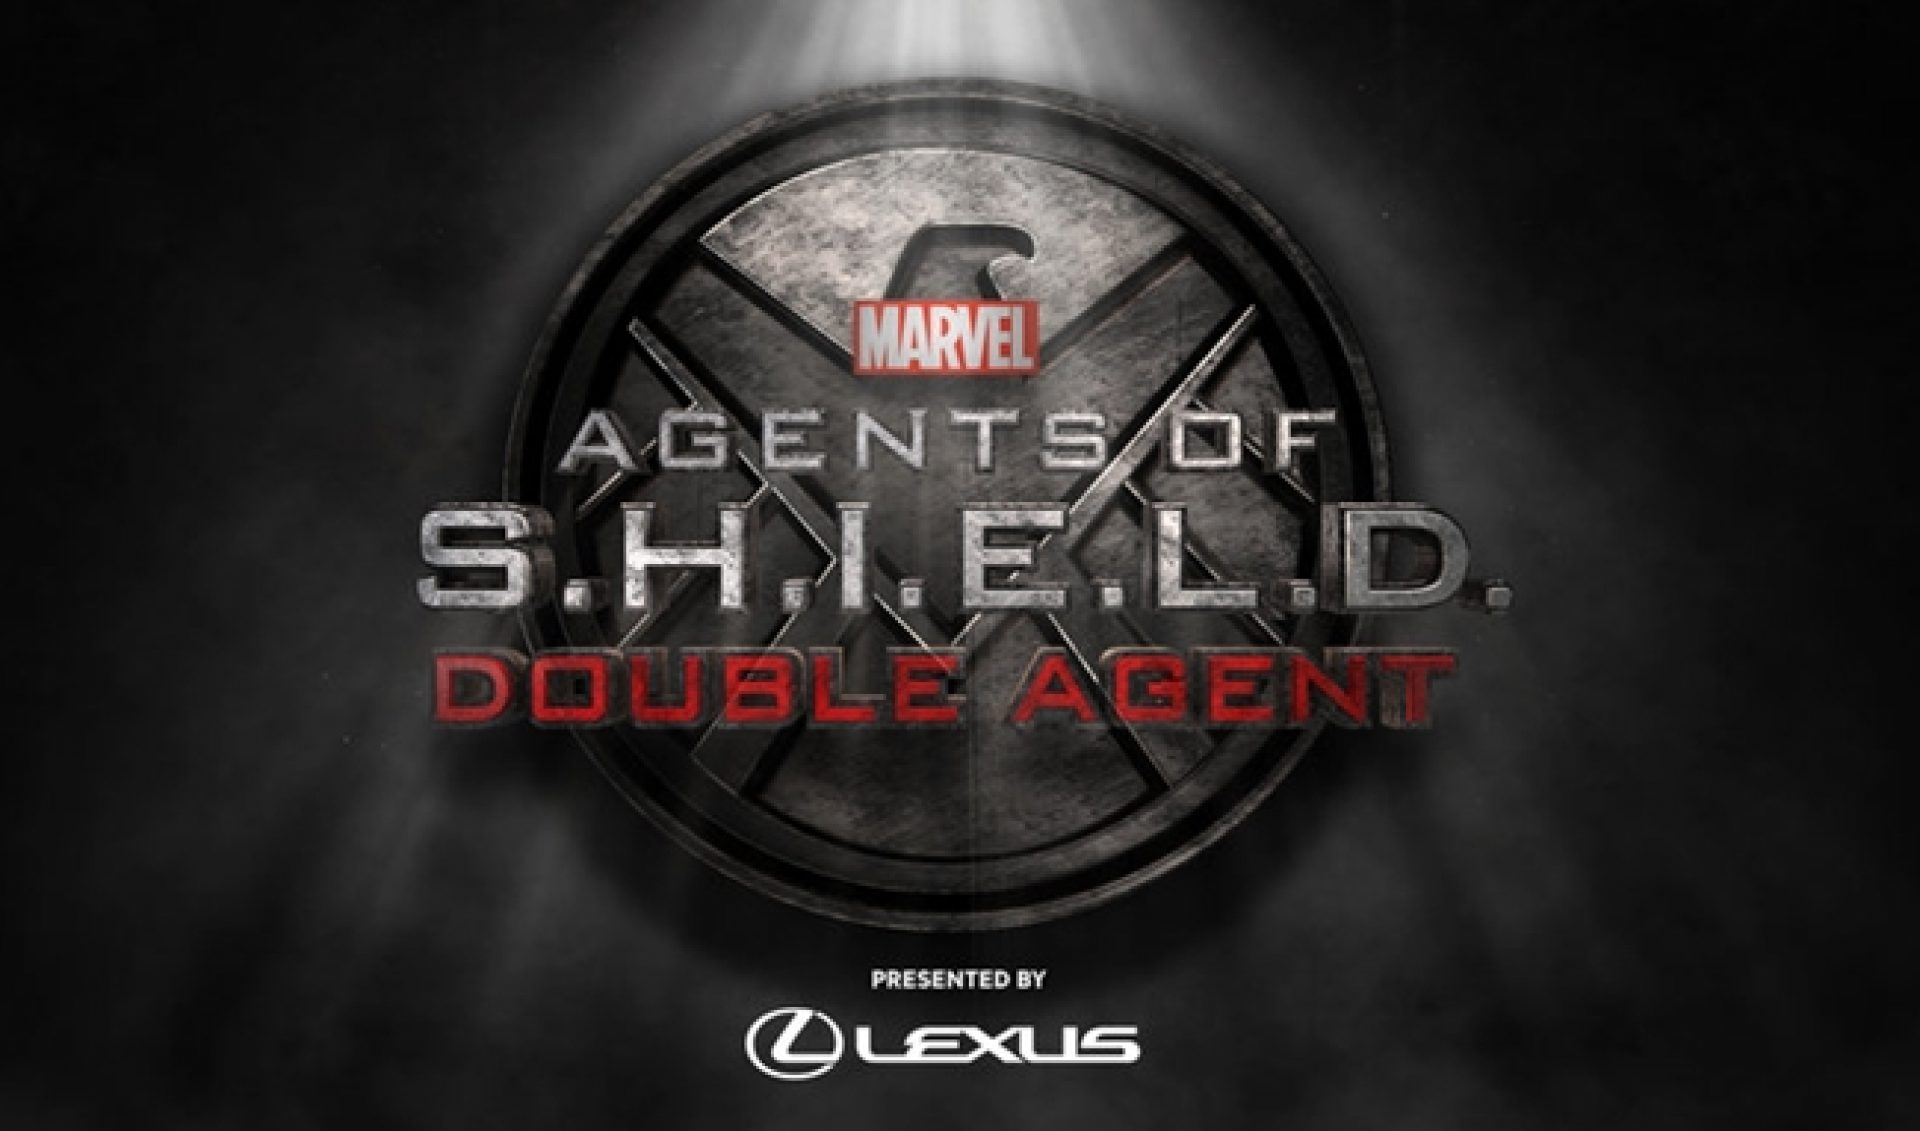 Marvel's 'Double Agent' Offers 'Agents Of S.H.I.E.L.D.' Companion